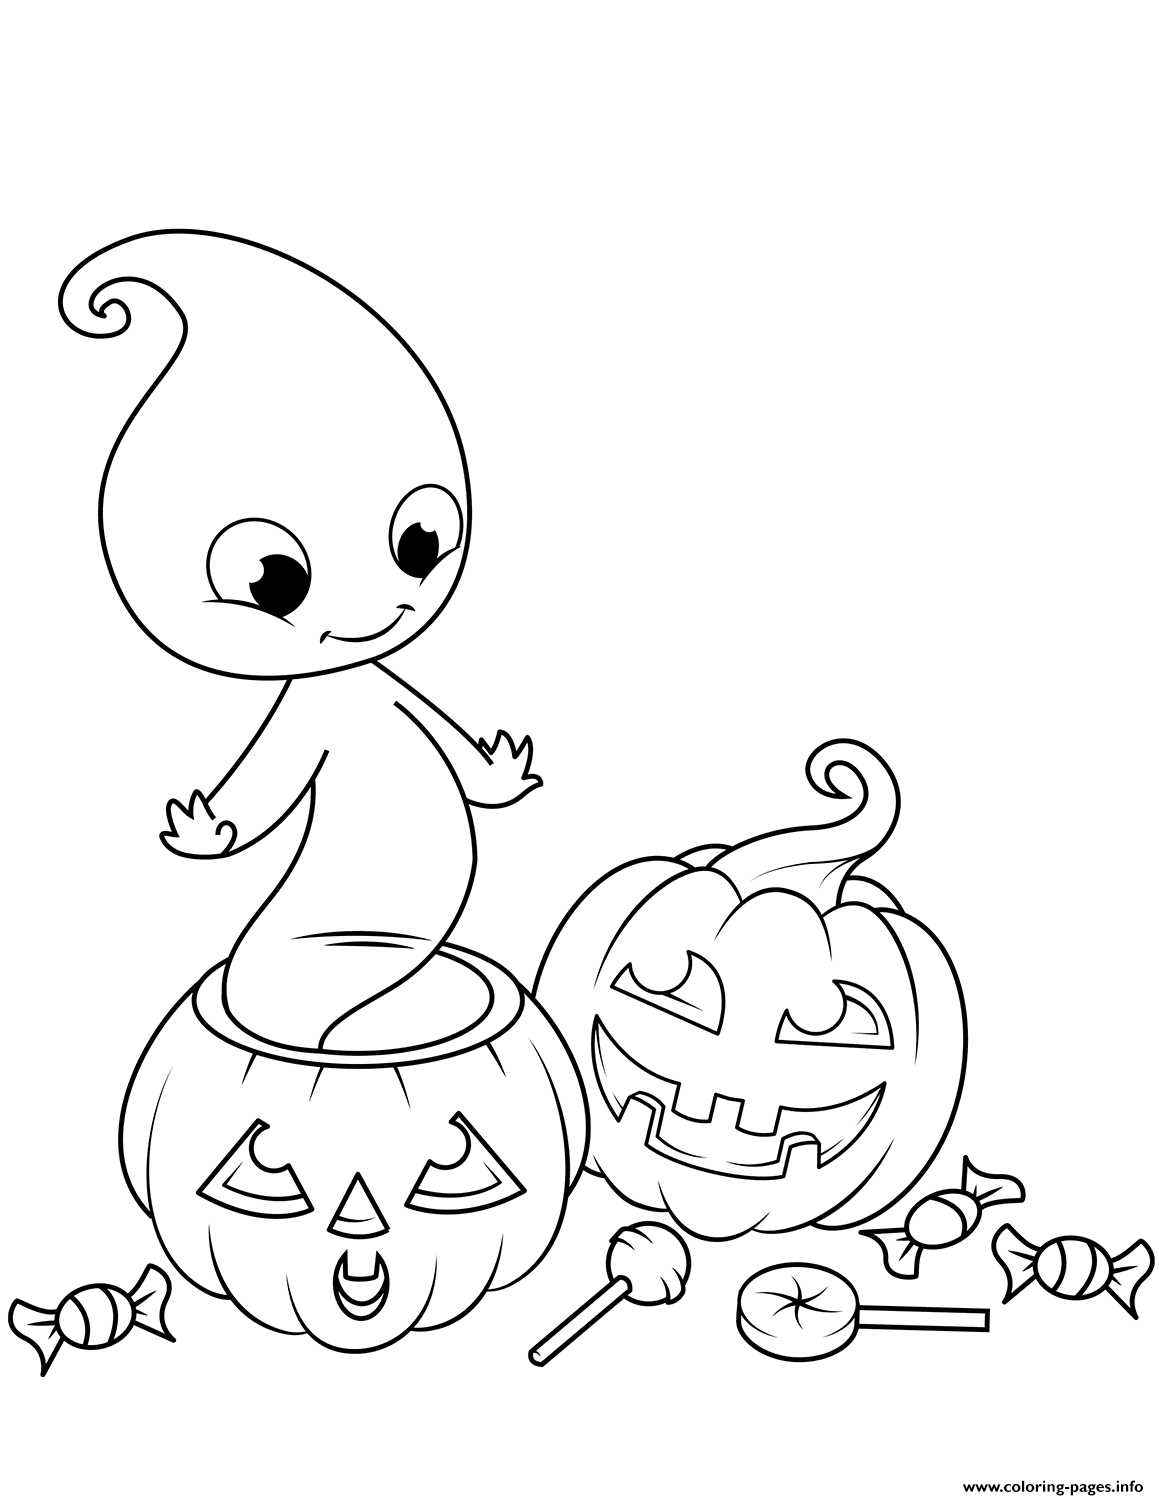 Cute Halloween Coloring Pages Printable Cute Ghost From Jack O Lantern Halloween Coloring Pages Printable